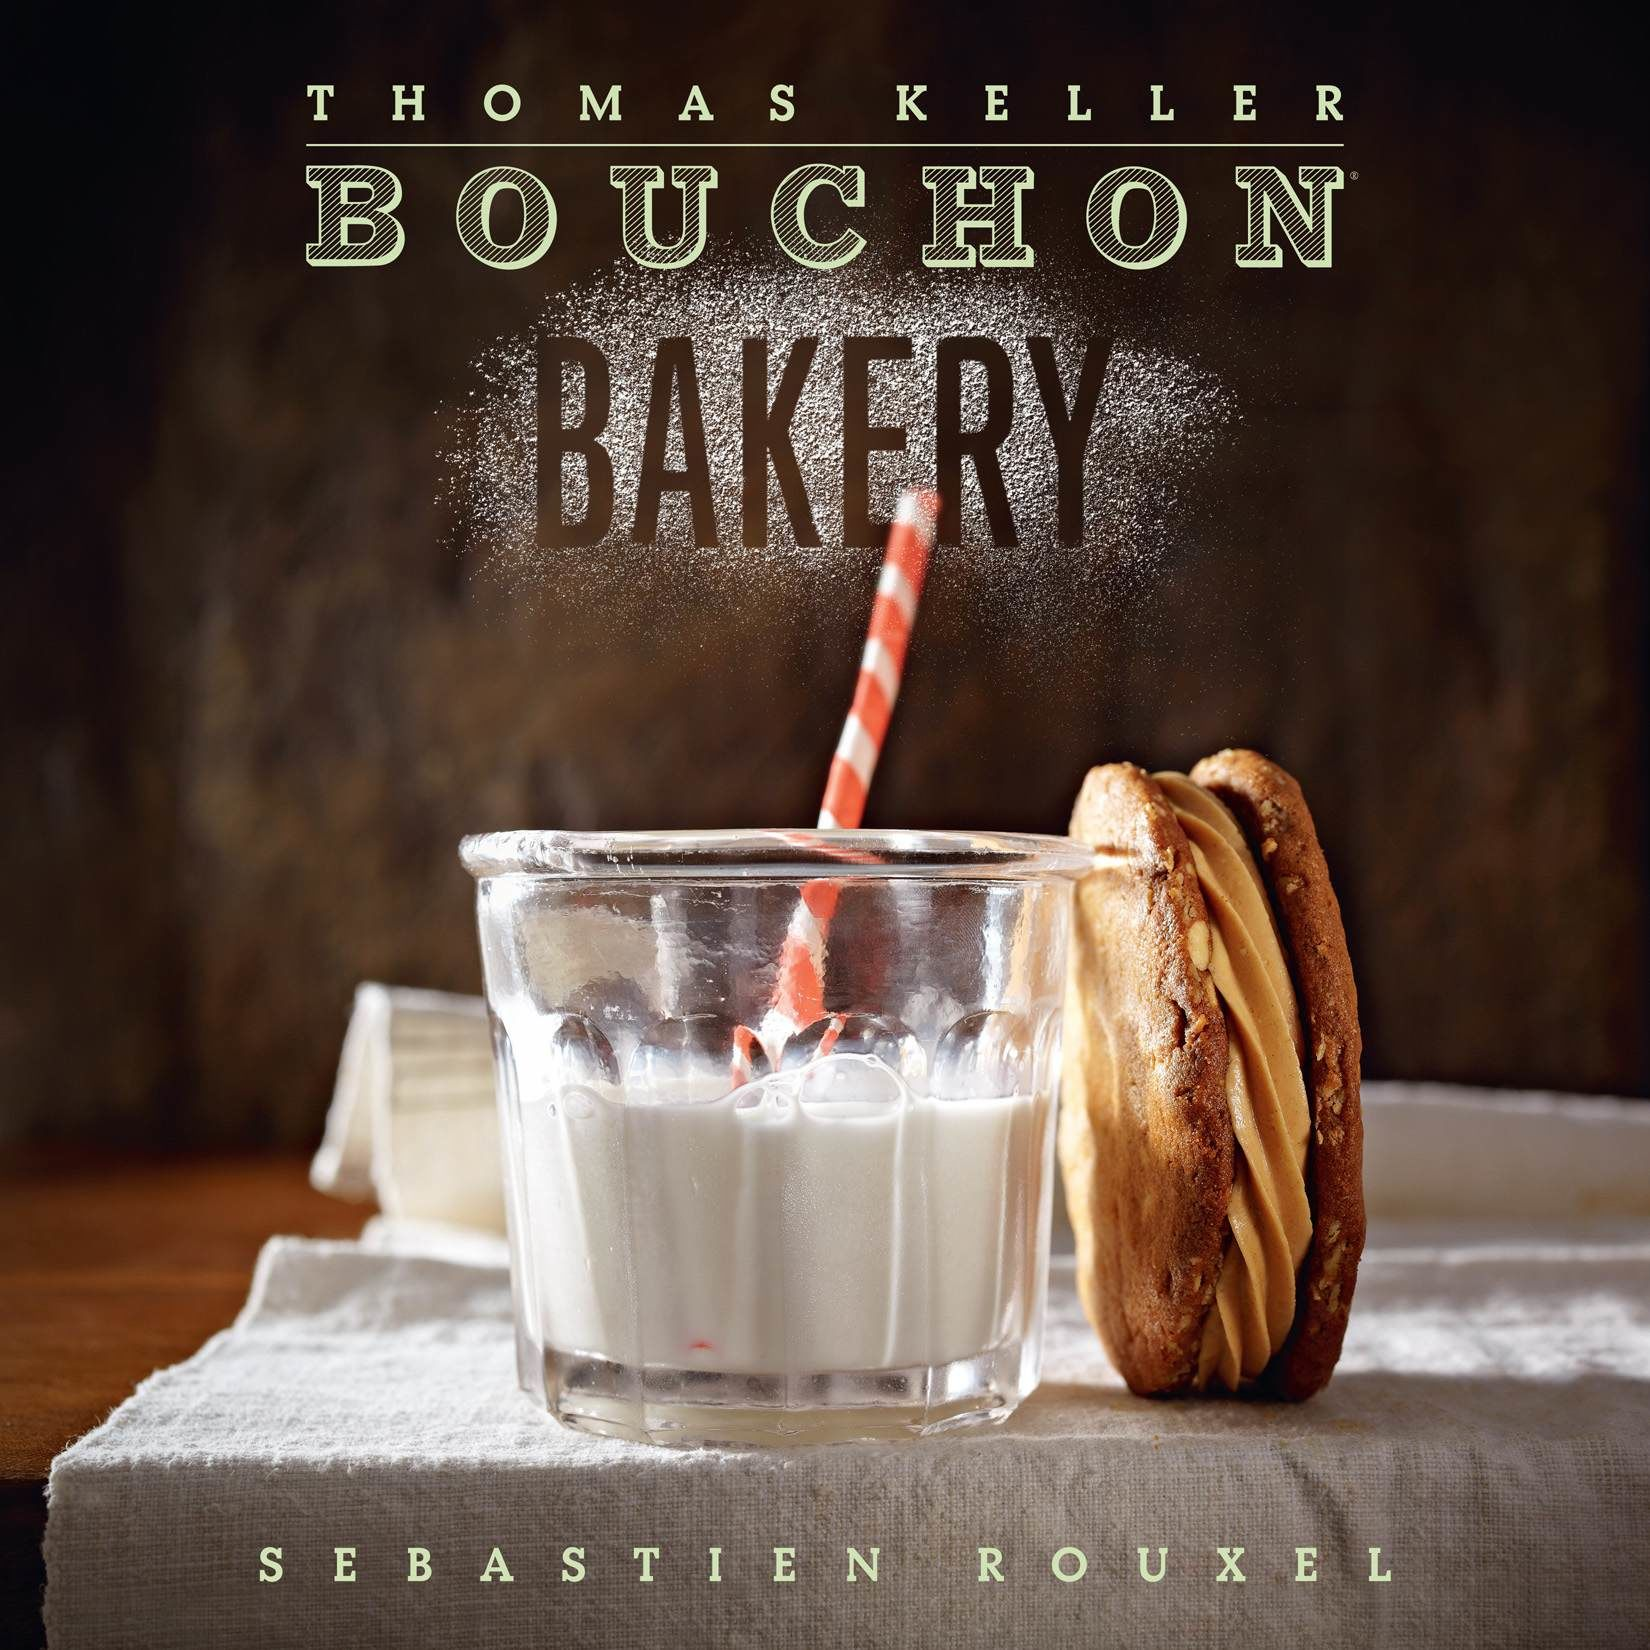 Thomas Keller Visits the Test Kitchen (and Makes Us Pecan Sandies!)